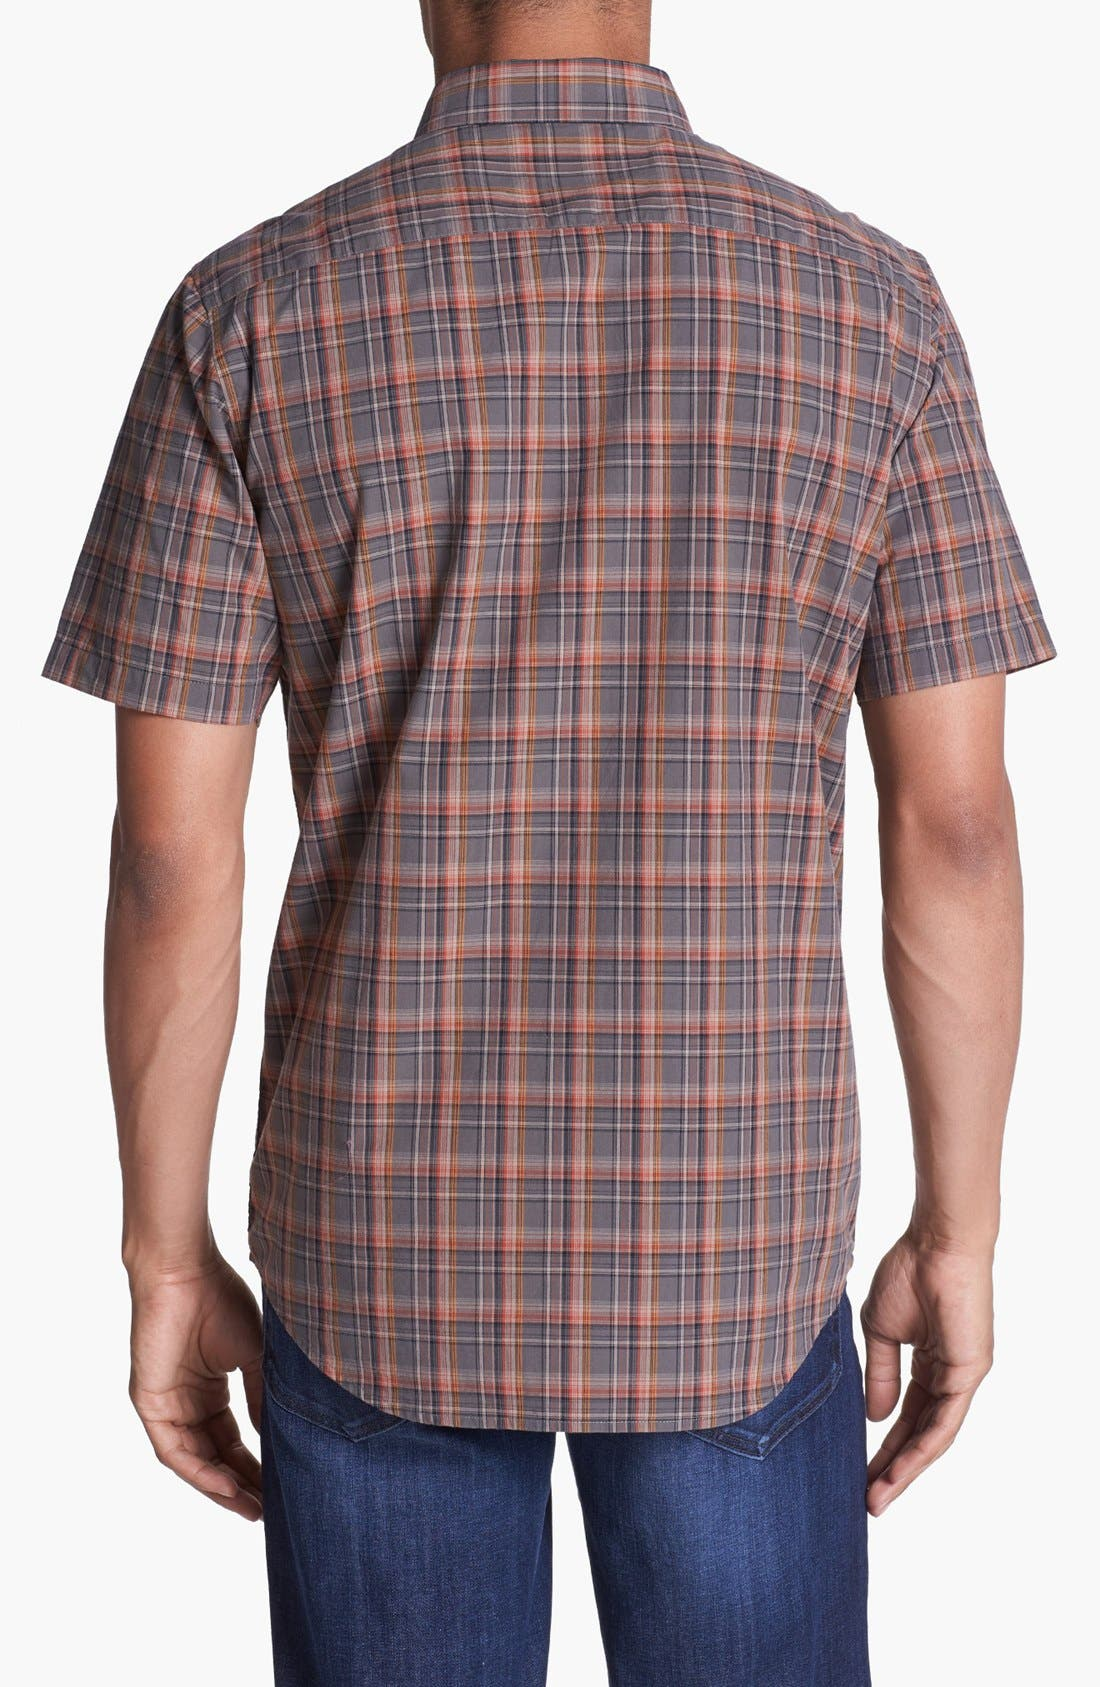 Alternate Image 3  - RVCA 'Sundown' Short Sleeve Plaid Shirt